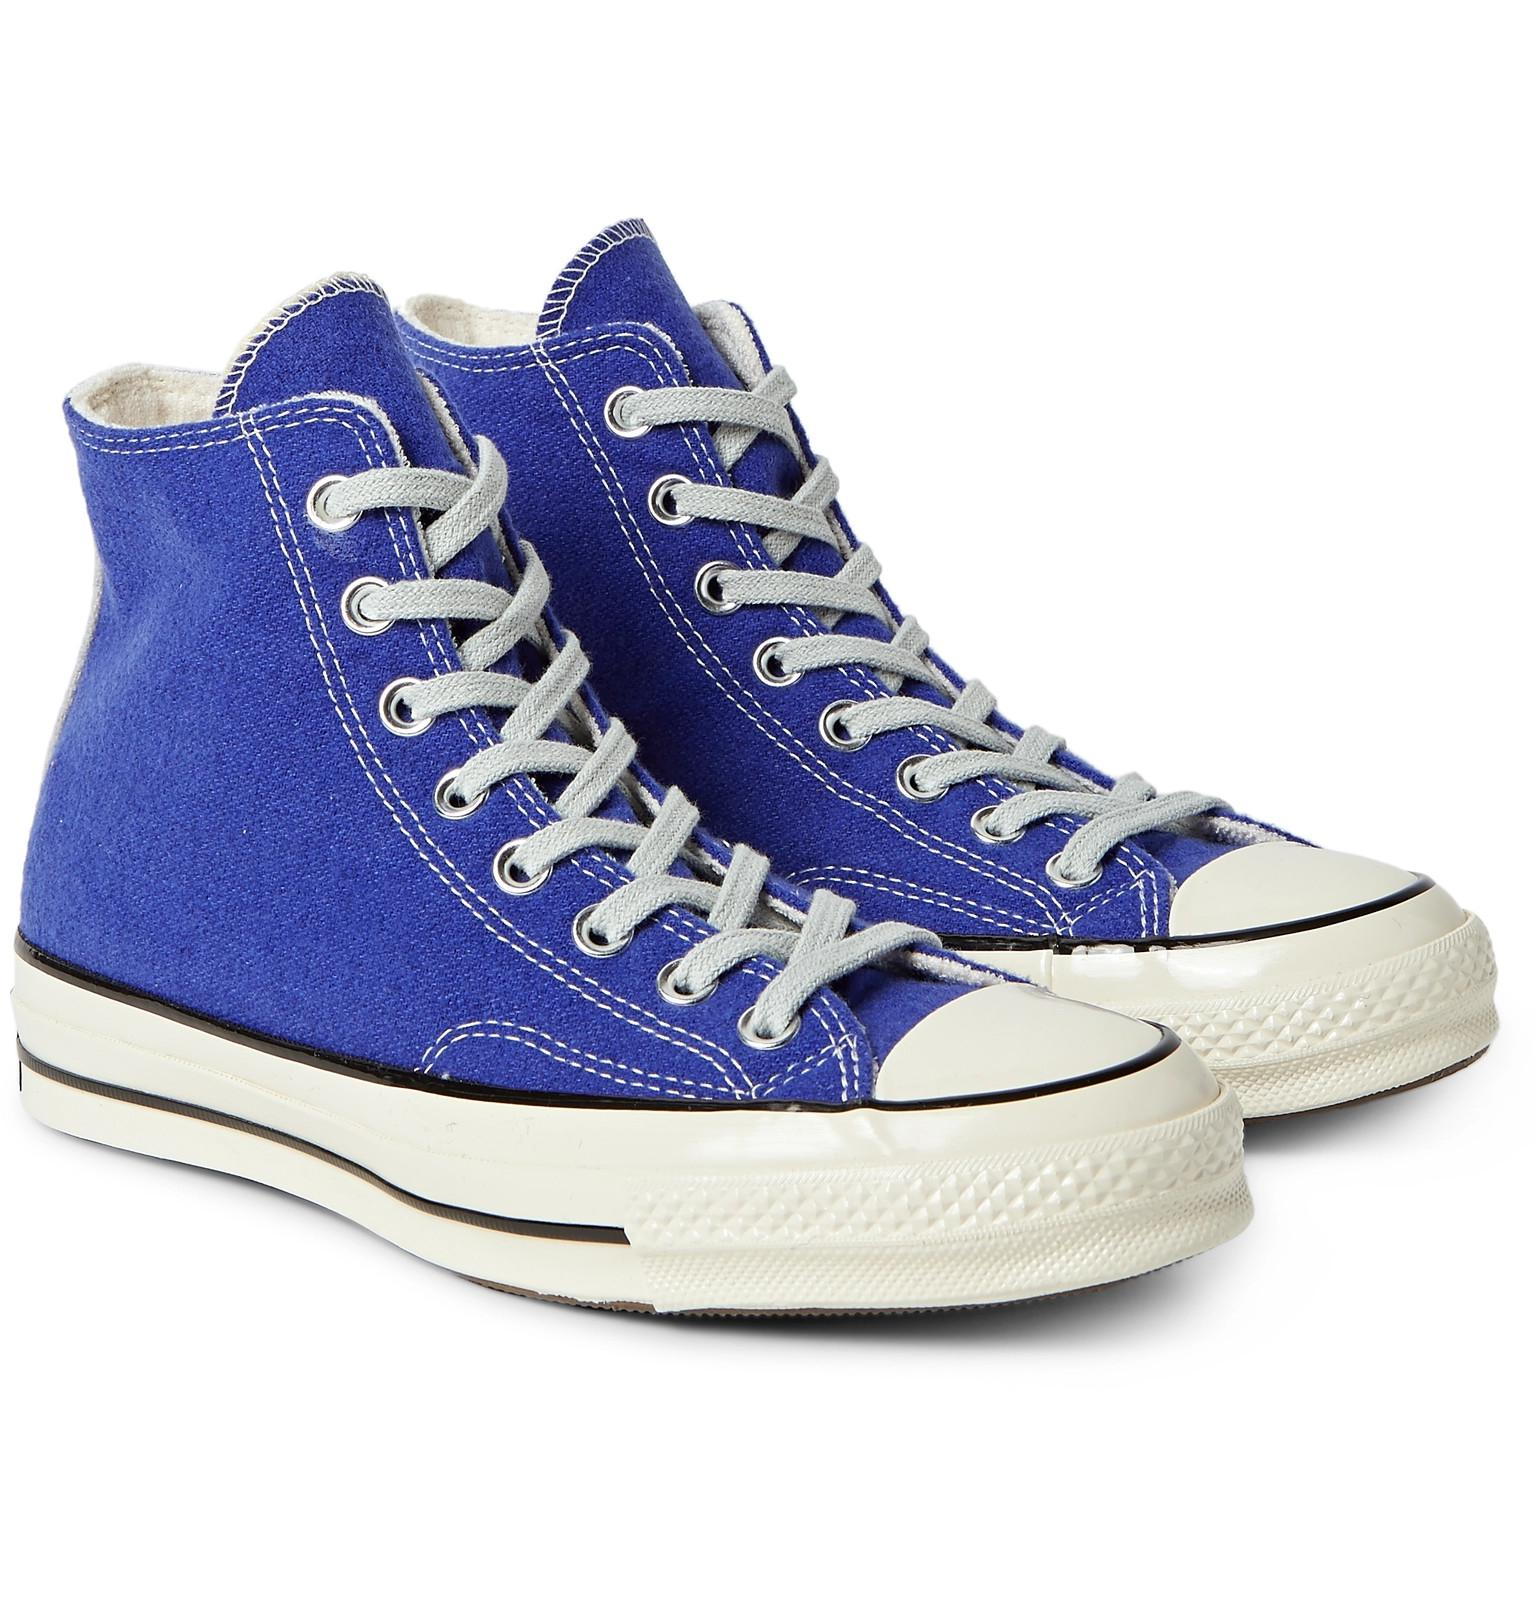 7e4874ba06f4 Lyst - Converse 1970s Chuck Taylor All Star Wool High-top Sneakers ...